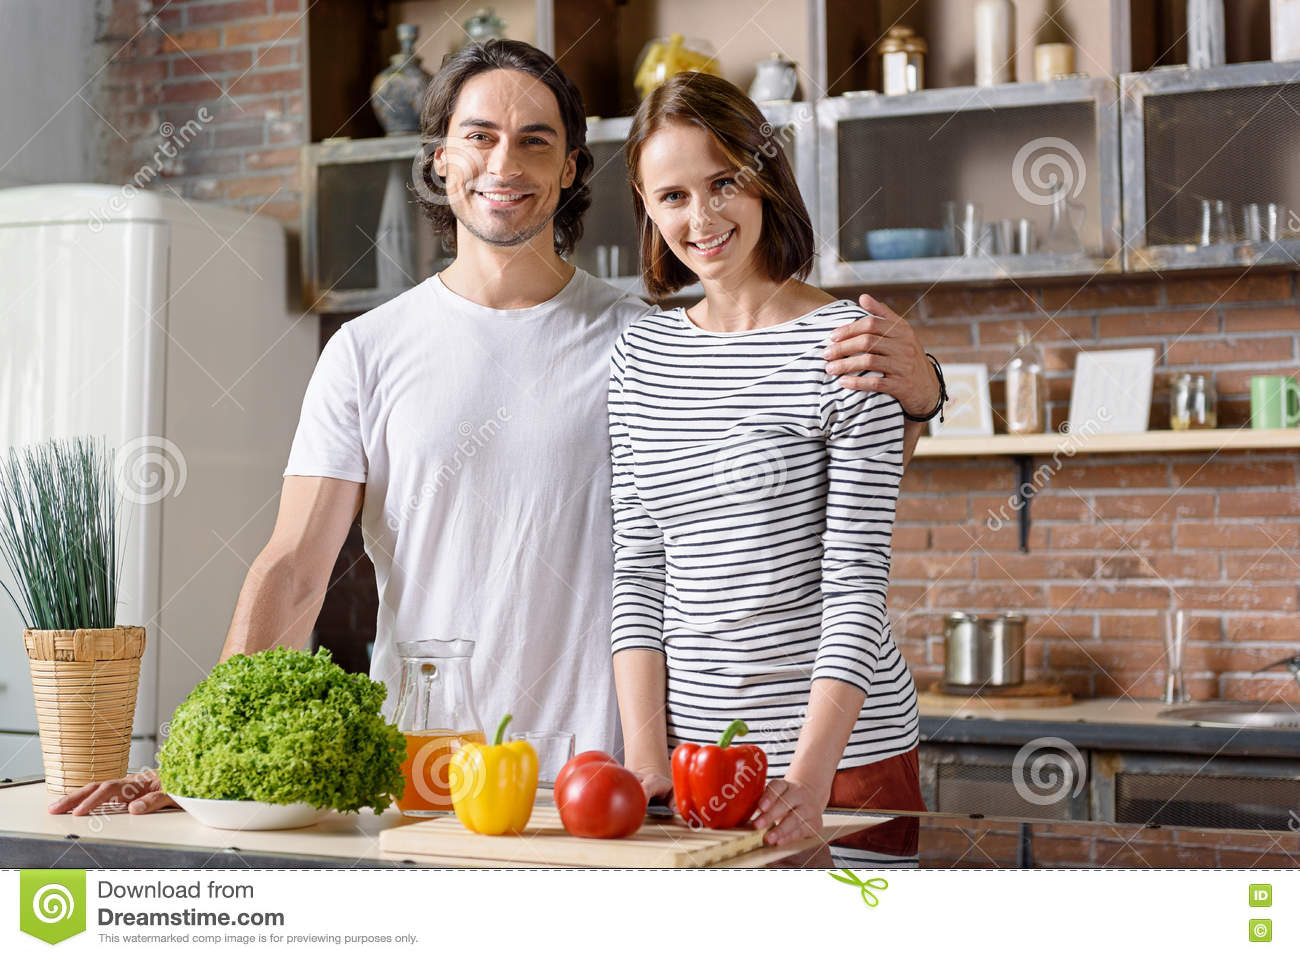 The Healthy, Happy Husband Diet pics